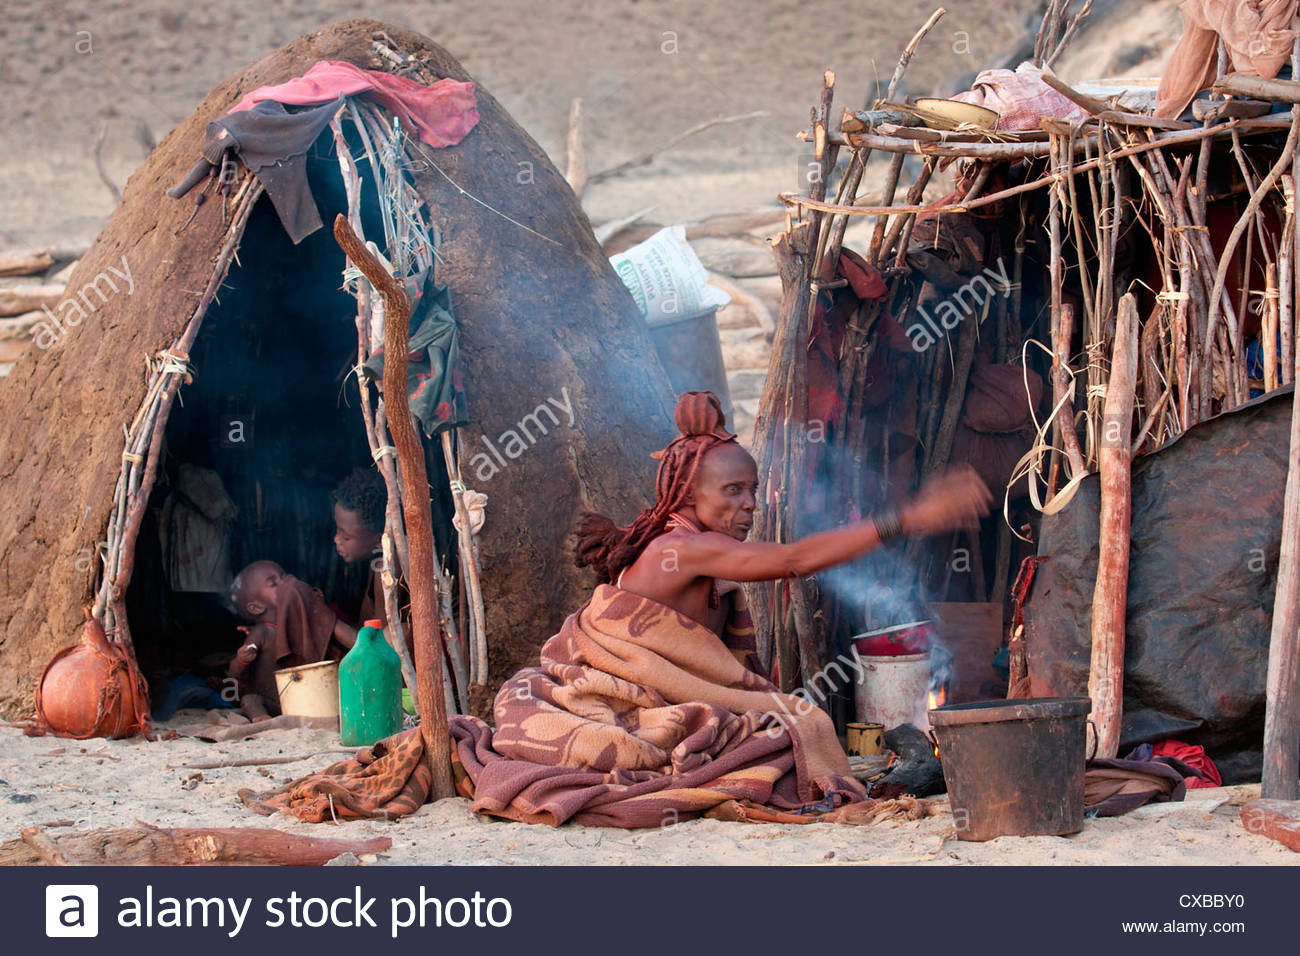 Himba woman sitting on ground fanning a small fire outside two huts, Himba village, Purros, Namibia, Africa - Stock Image